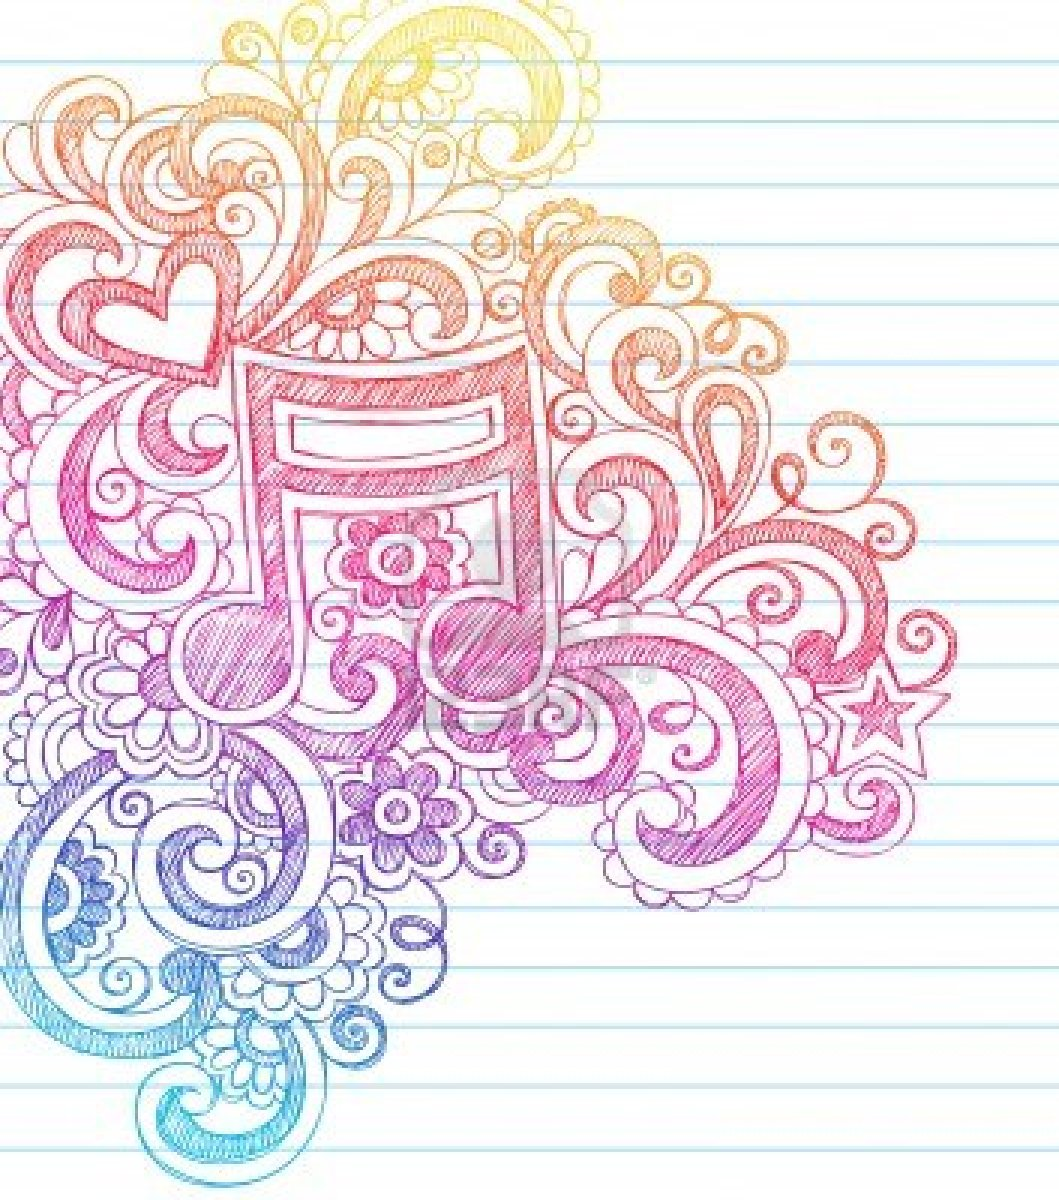 Book Cover Background Music : Music note sketchy back to school doodles with swirls